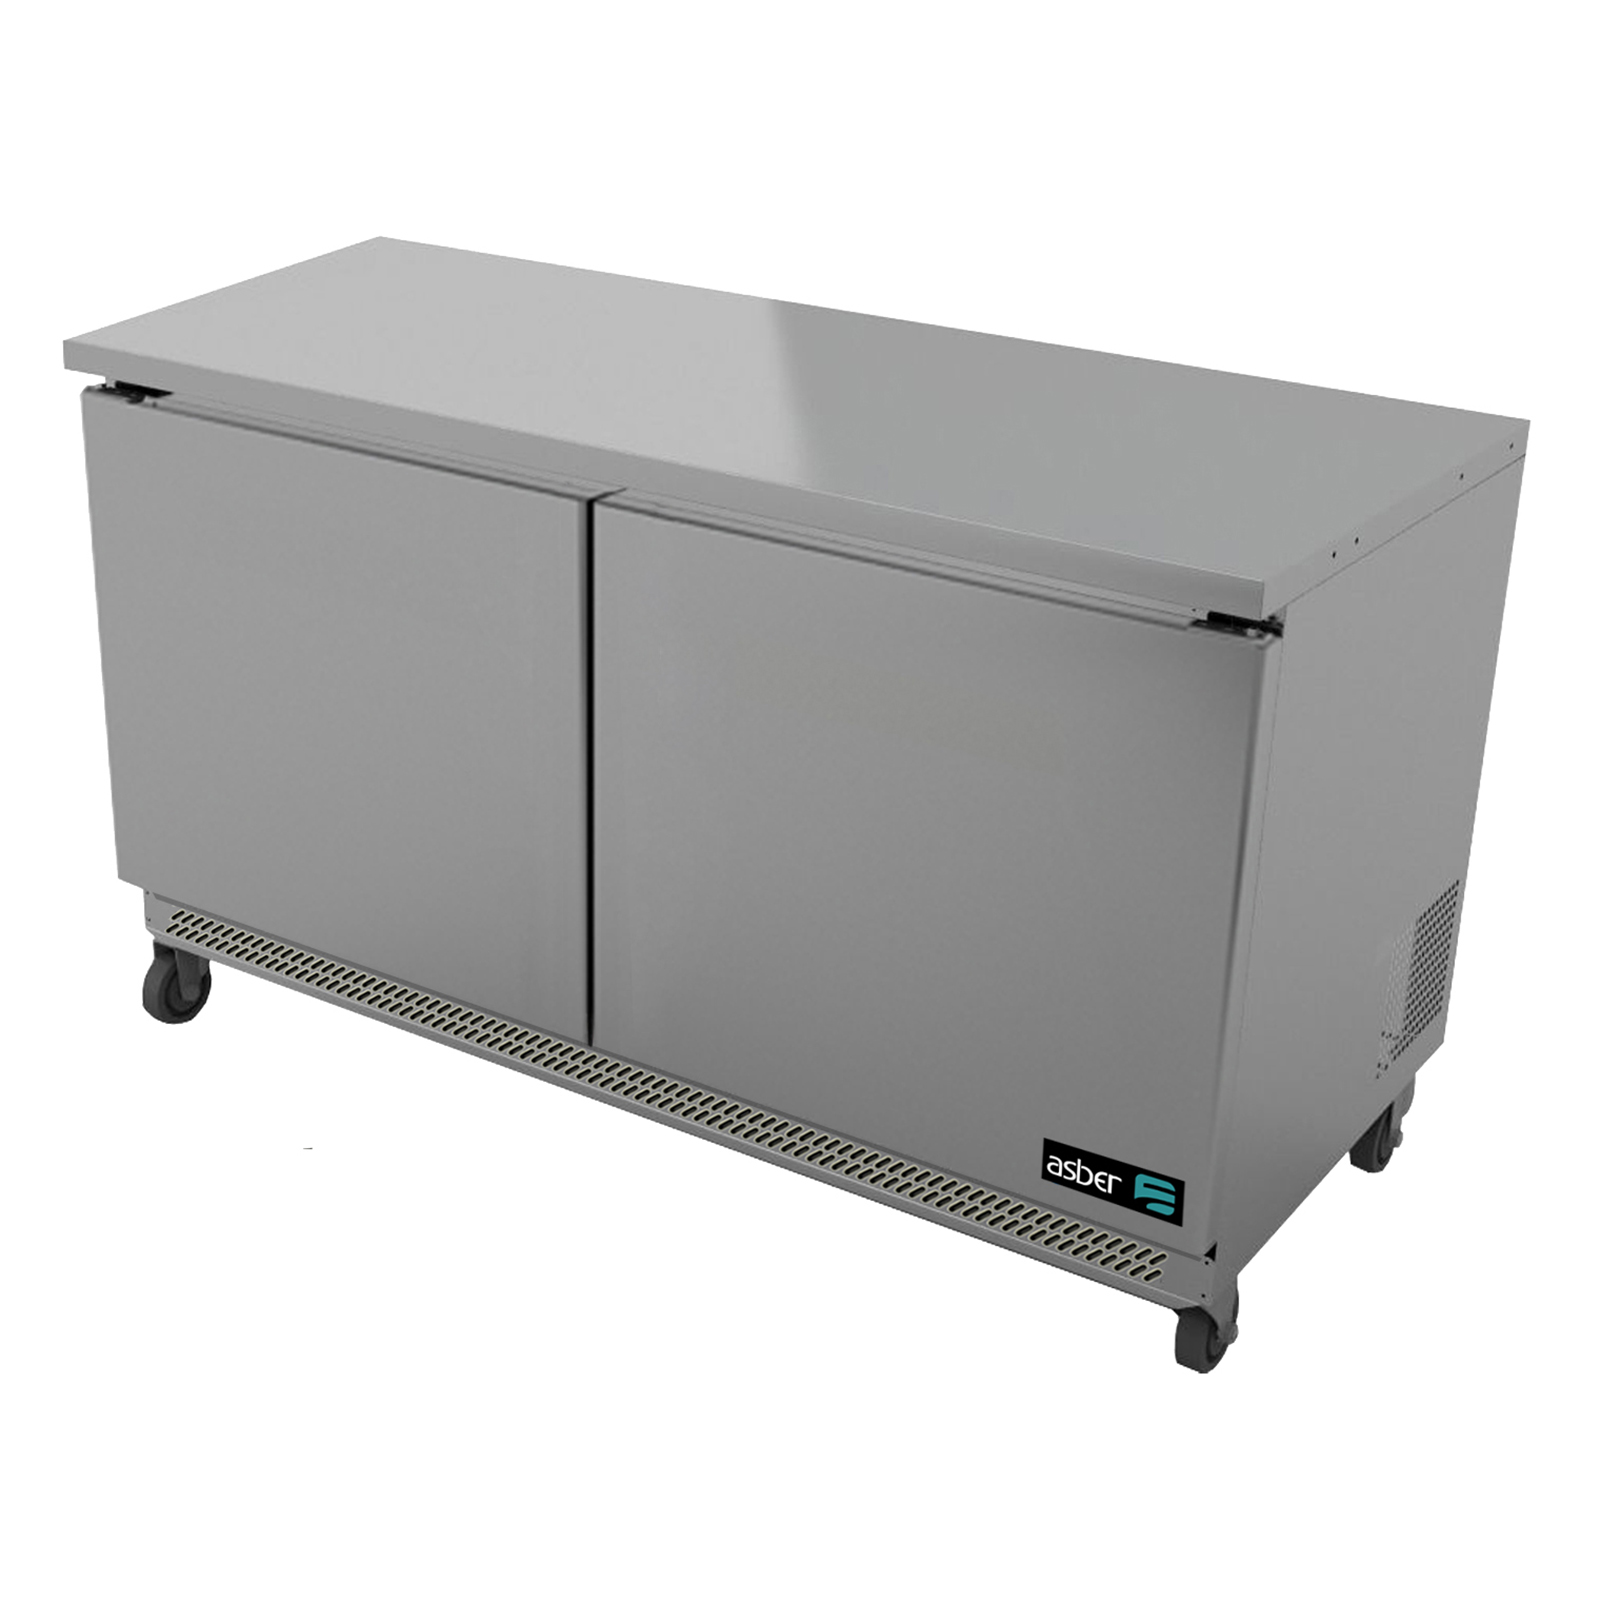 Asber AUTF-48 freezer, undercounter, reach-in